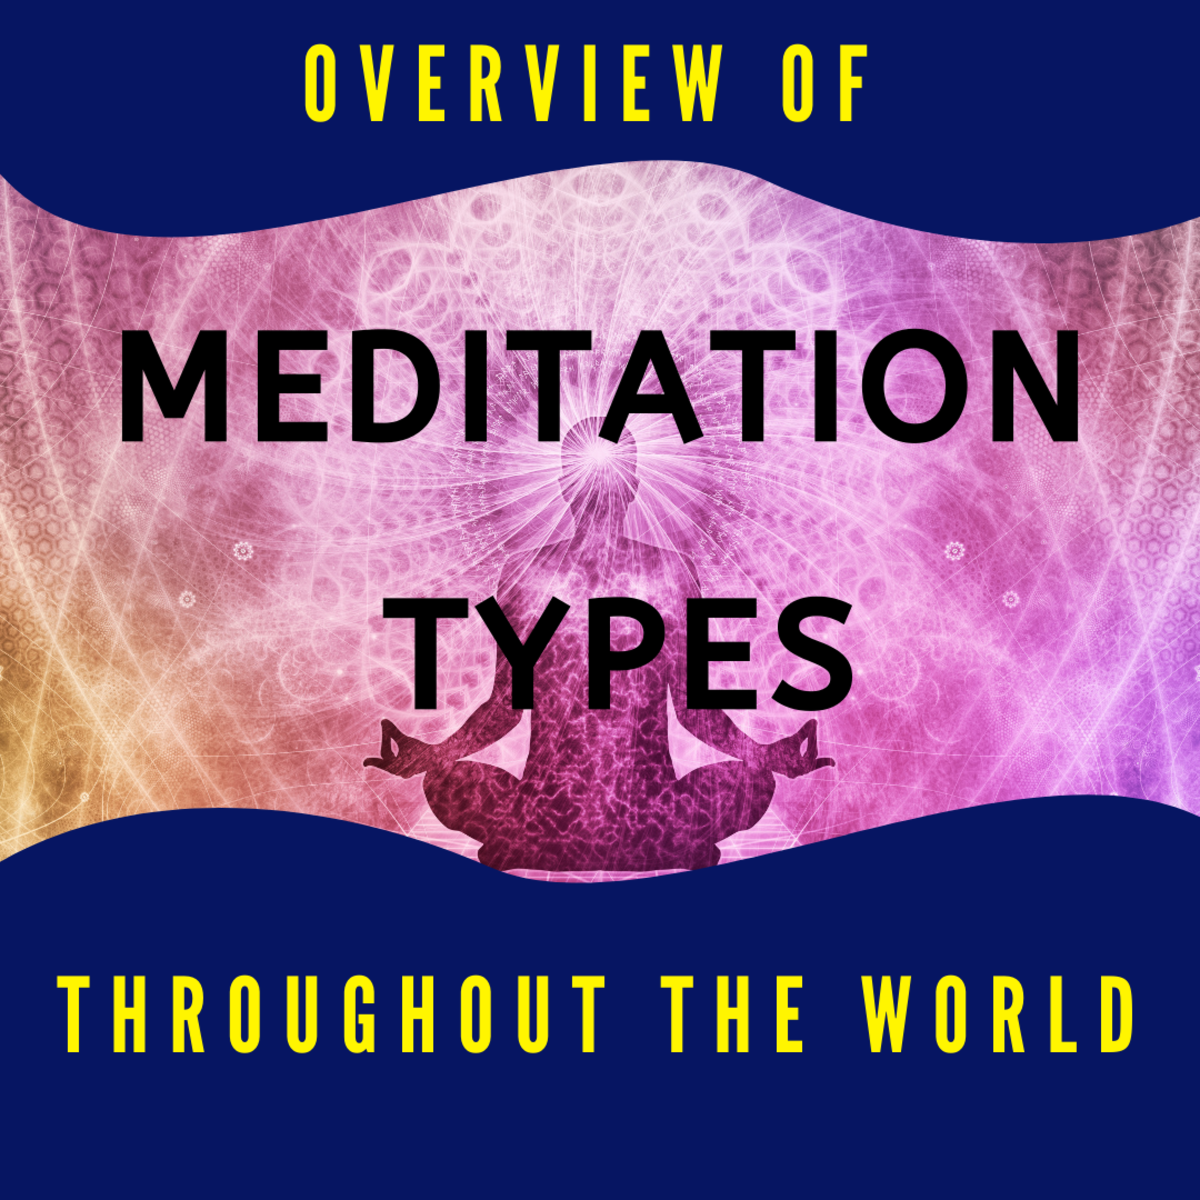 An Overview of Meditation Types Practiced Throughout the World